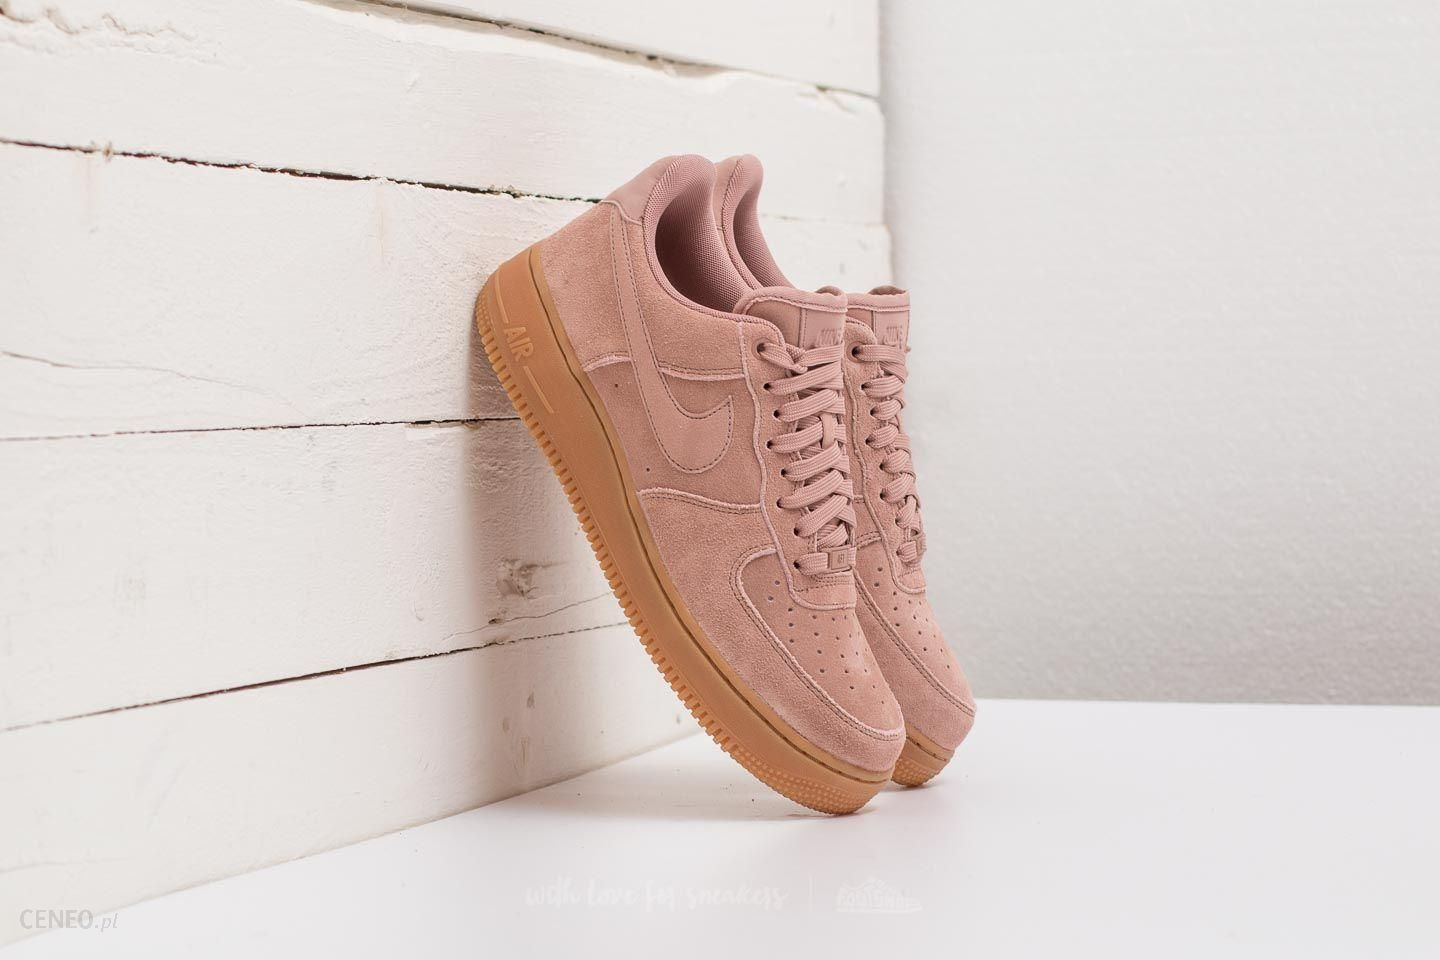 nike air force 1 07 lv8 suede pink